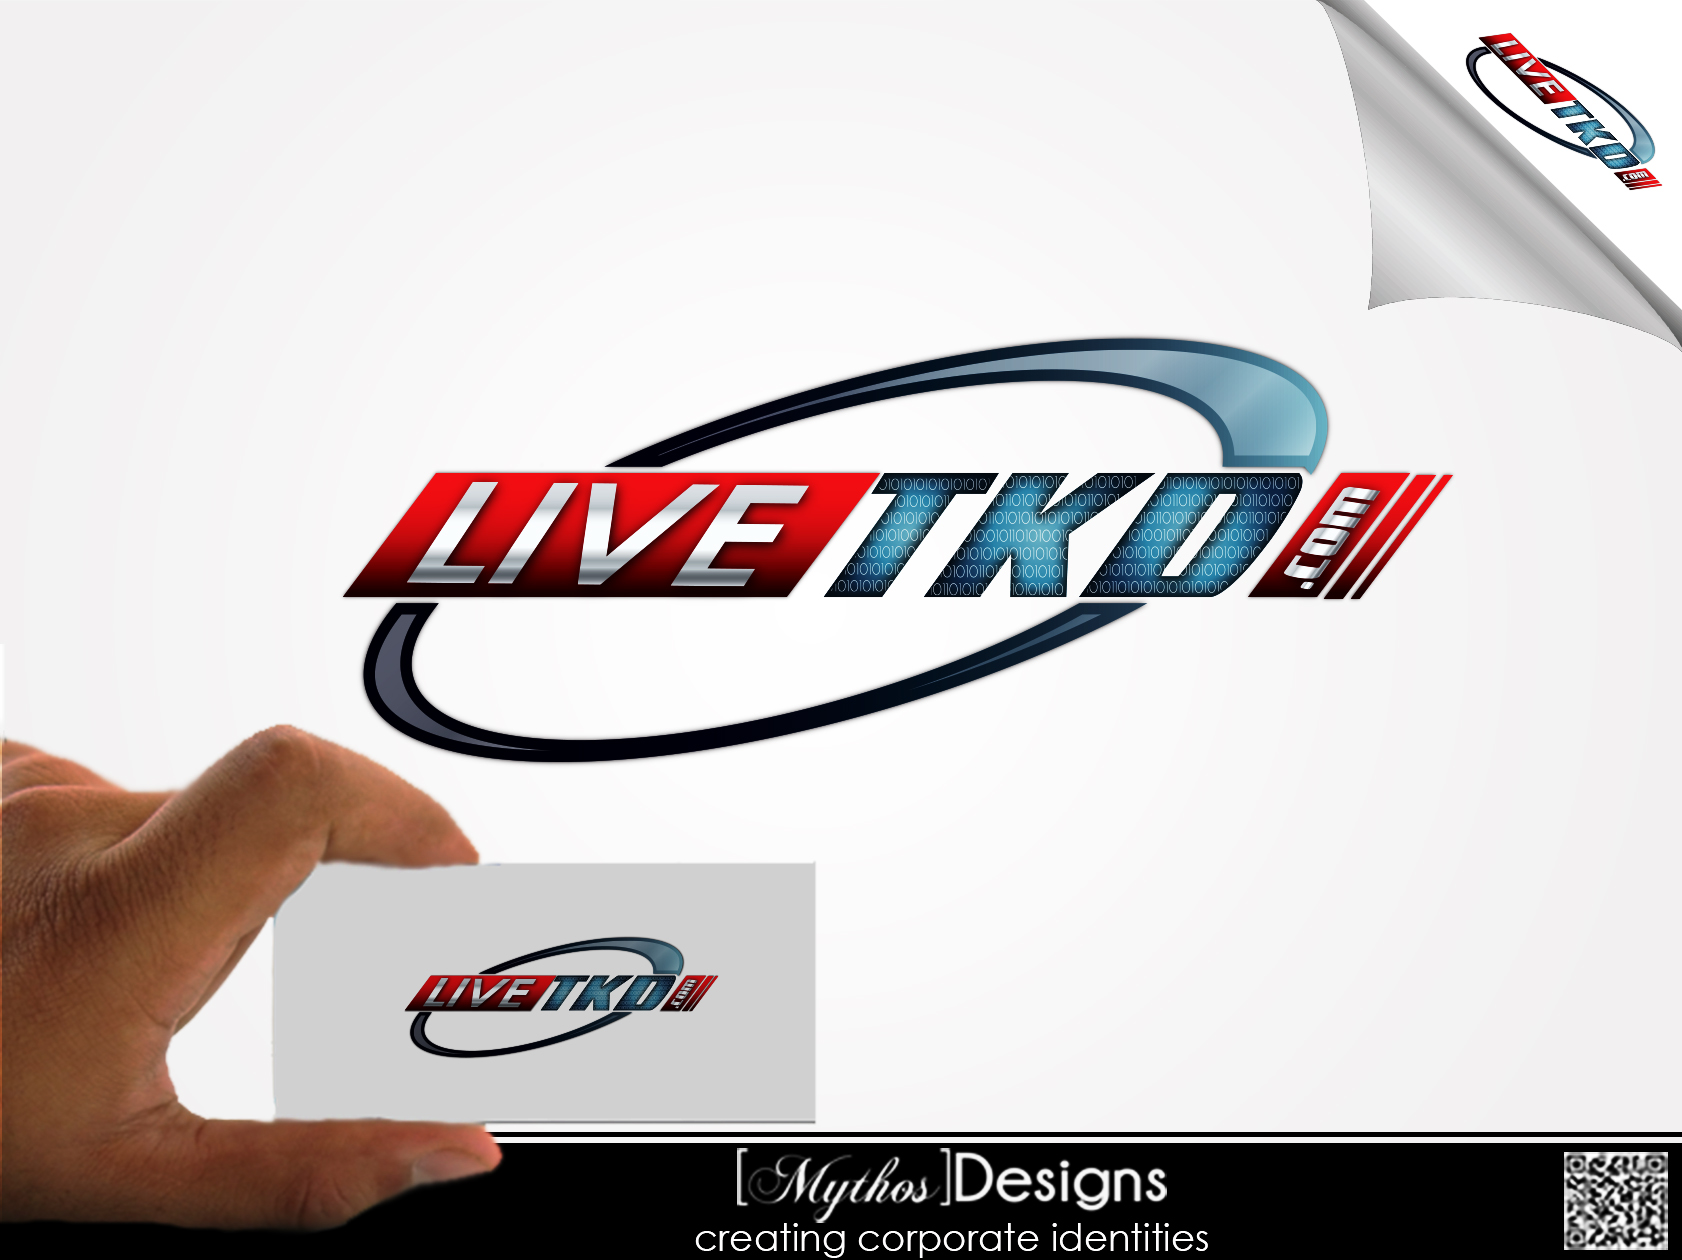 Logo Design by Mythos Designs - Entry No. 207 in the Logo Design Contest New Logo Design for LiveTKD.com.